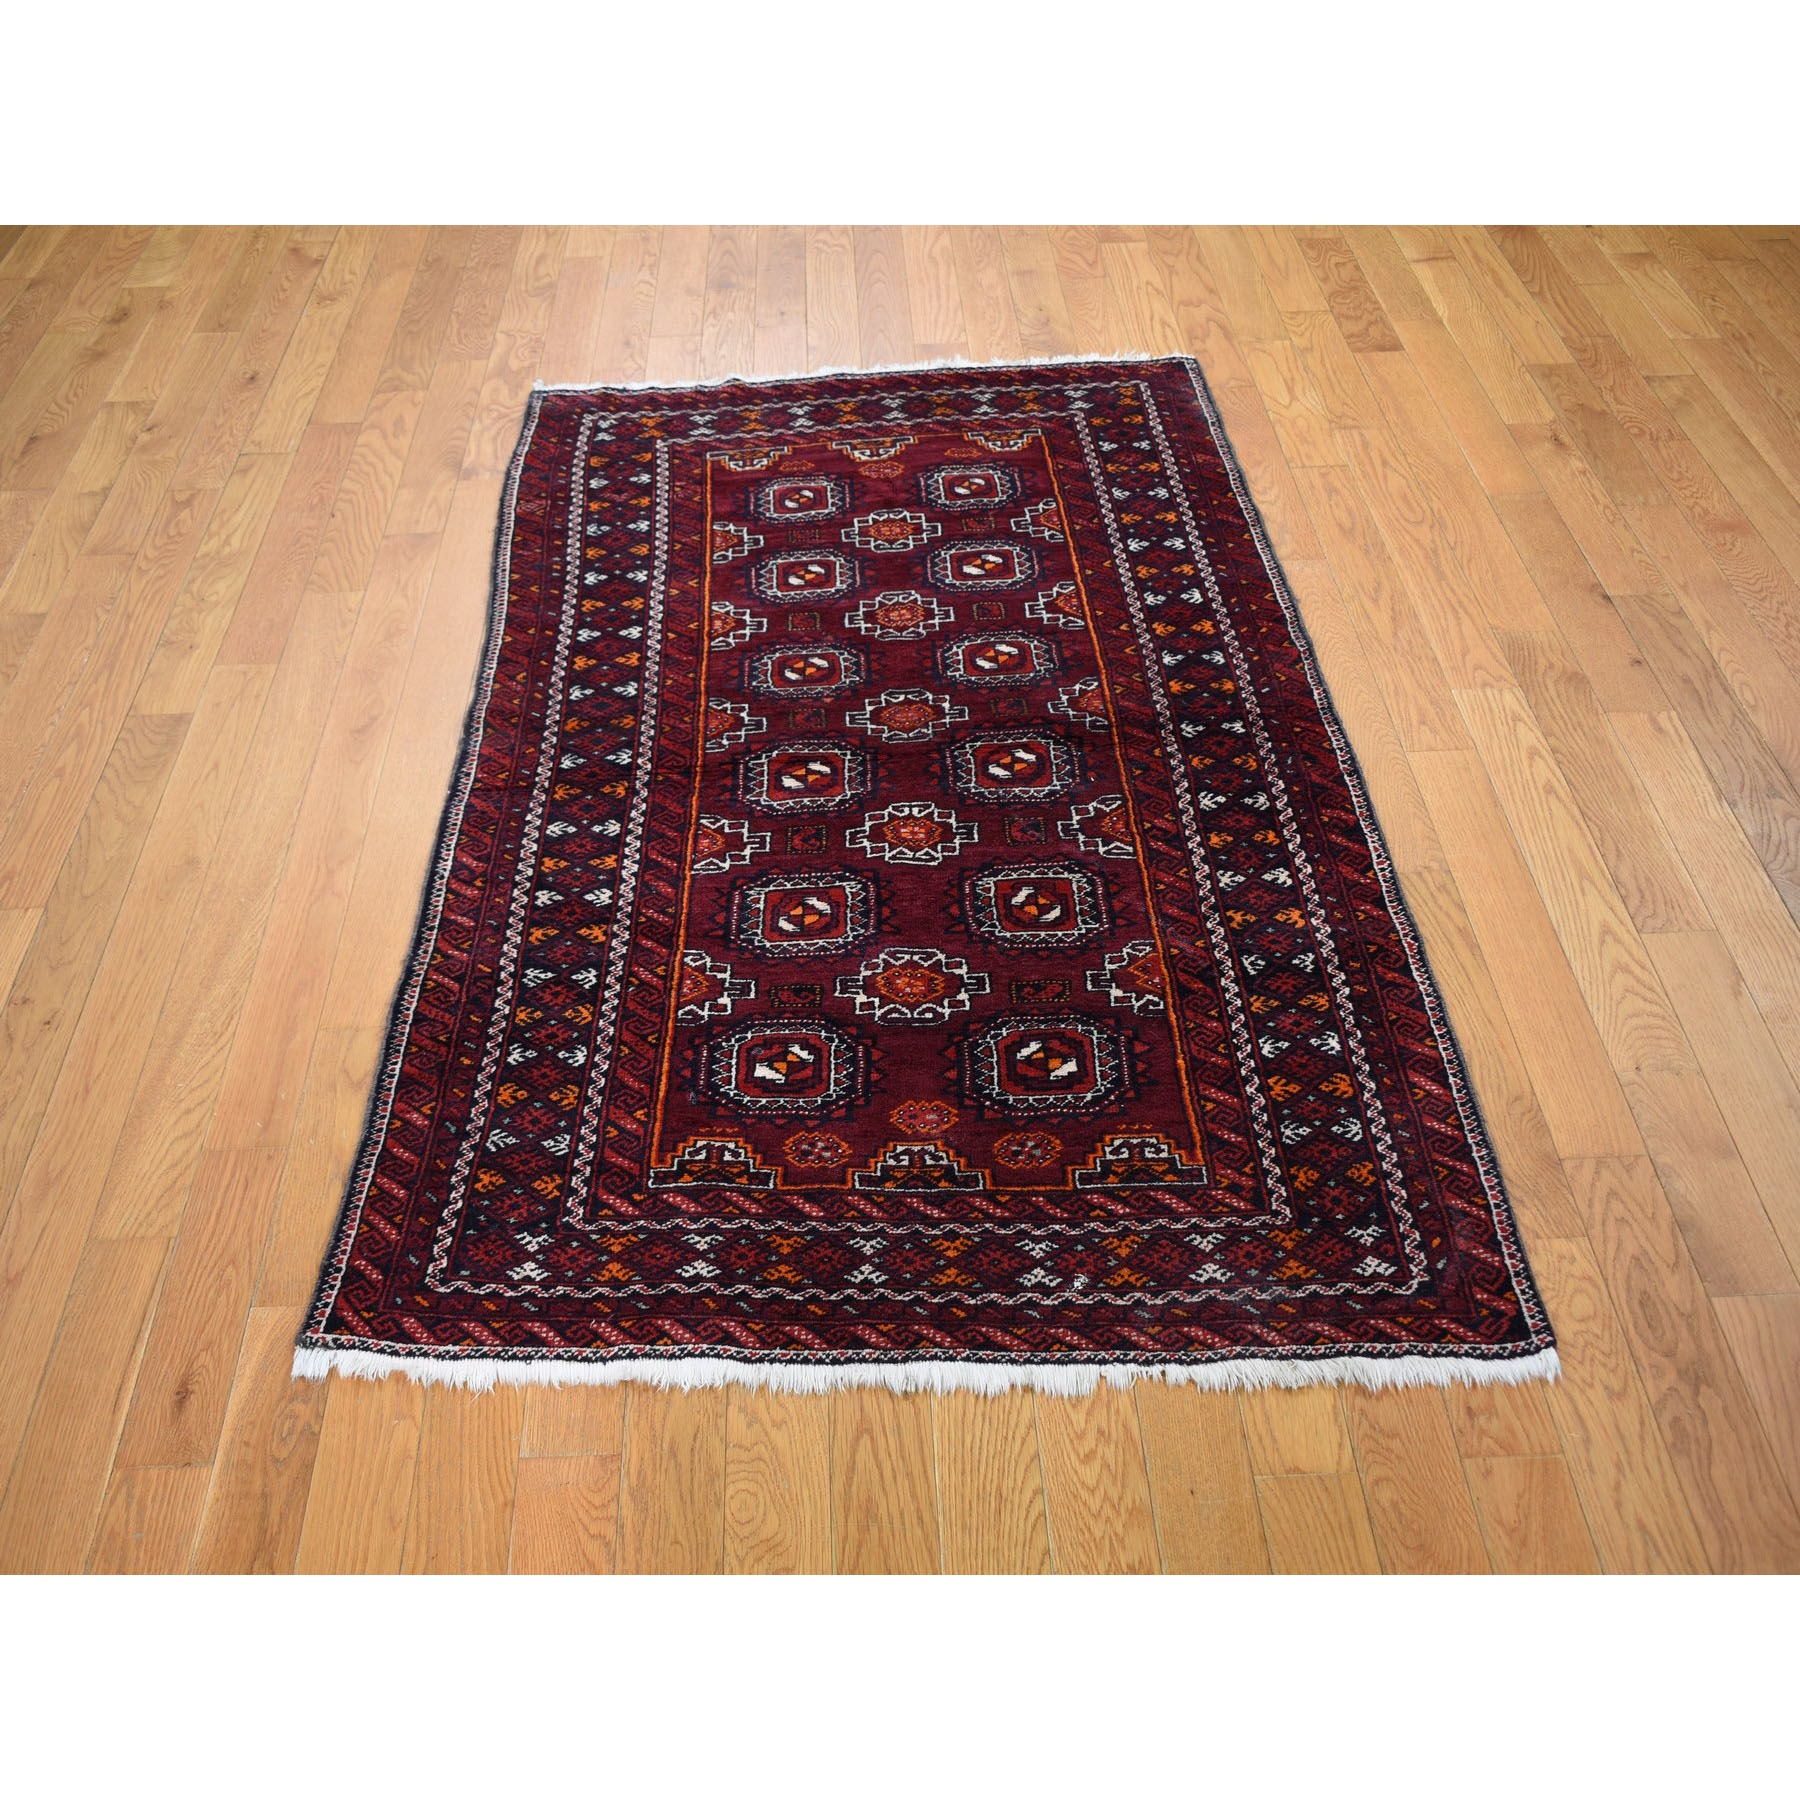 """3'4""""x5'10"""" Red Vintage Turkoman Gul Motif Pure Wool Hand Knotted Oriental Rug"""